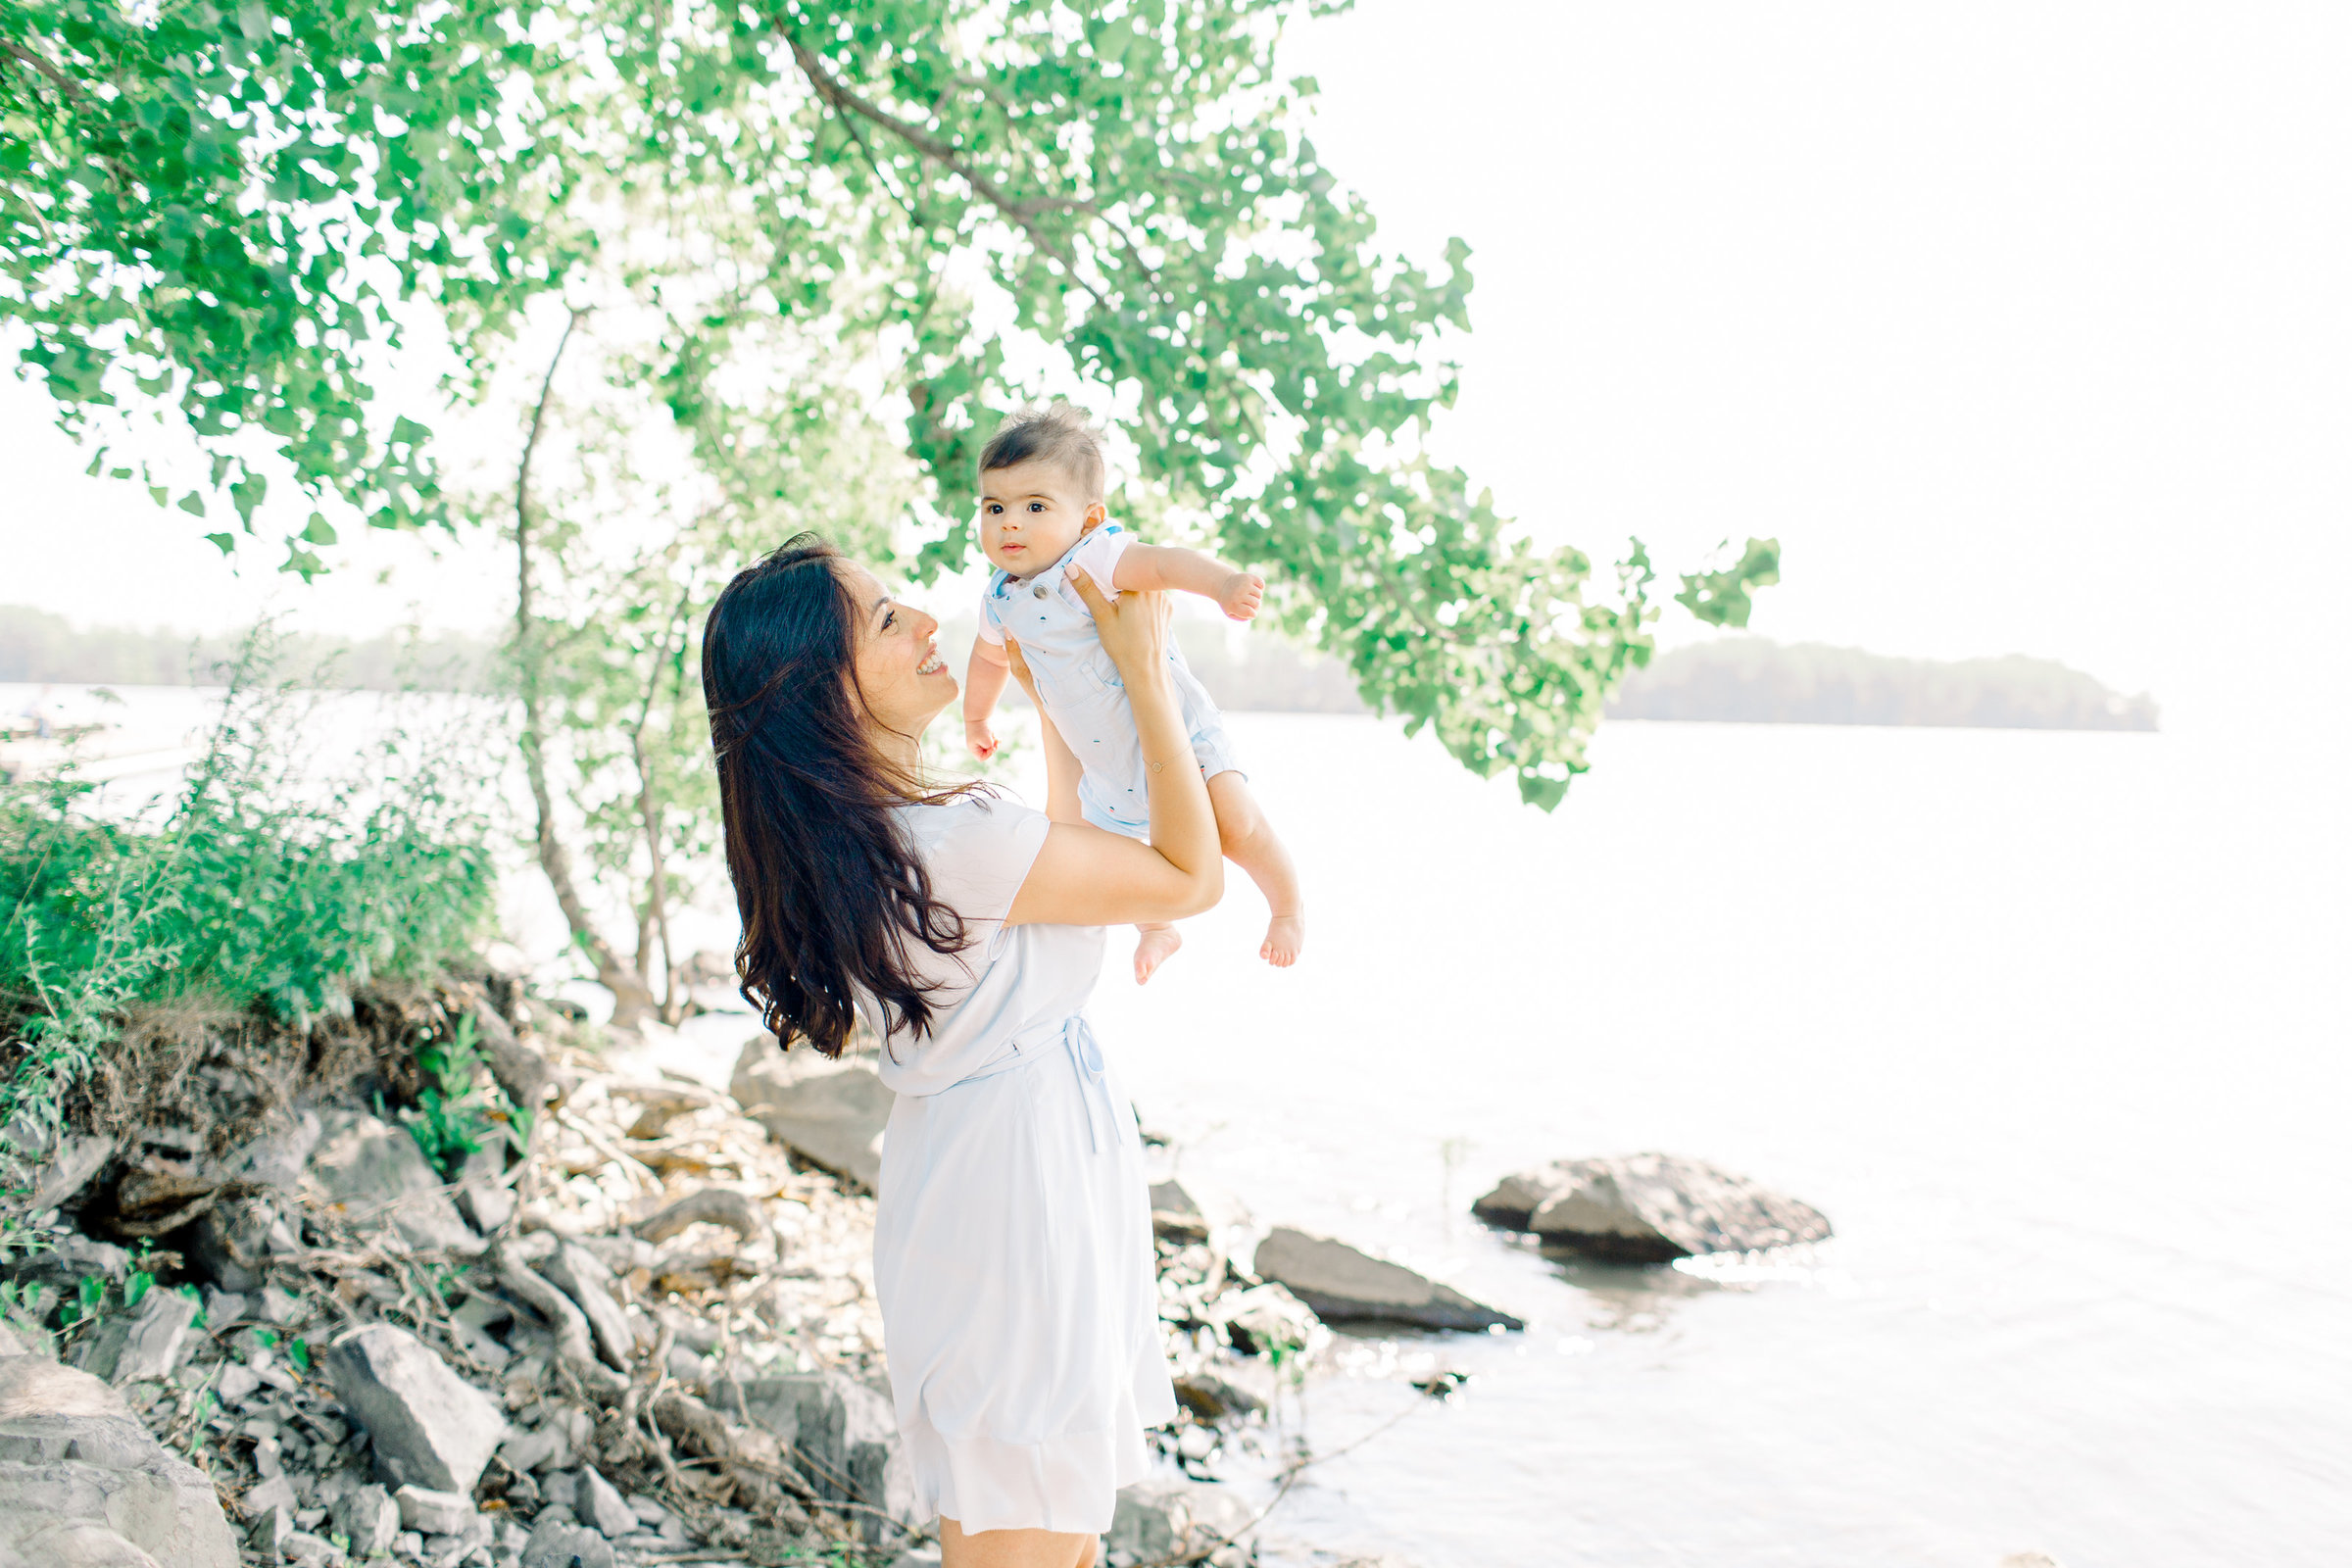 Rima-Besh-and-Jonathan-Lisa-Renault-Photographie-Montreal-Family-Photographer-9